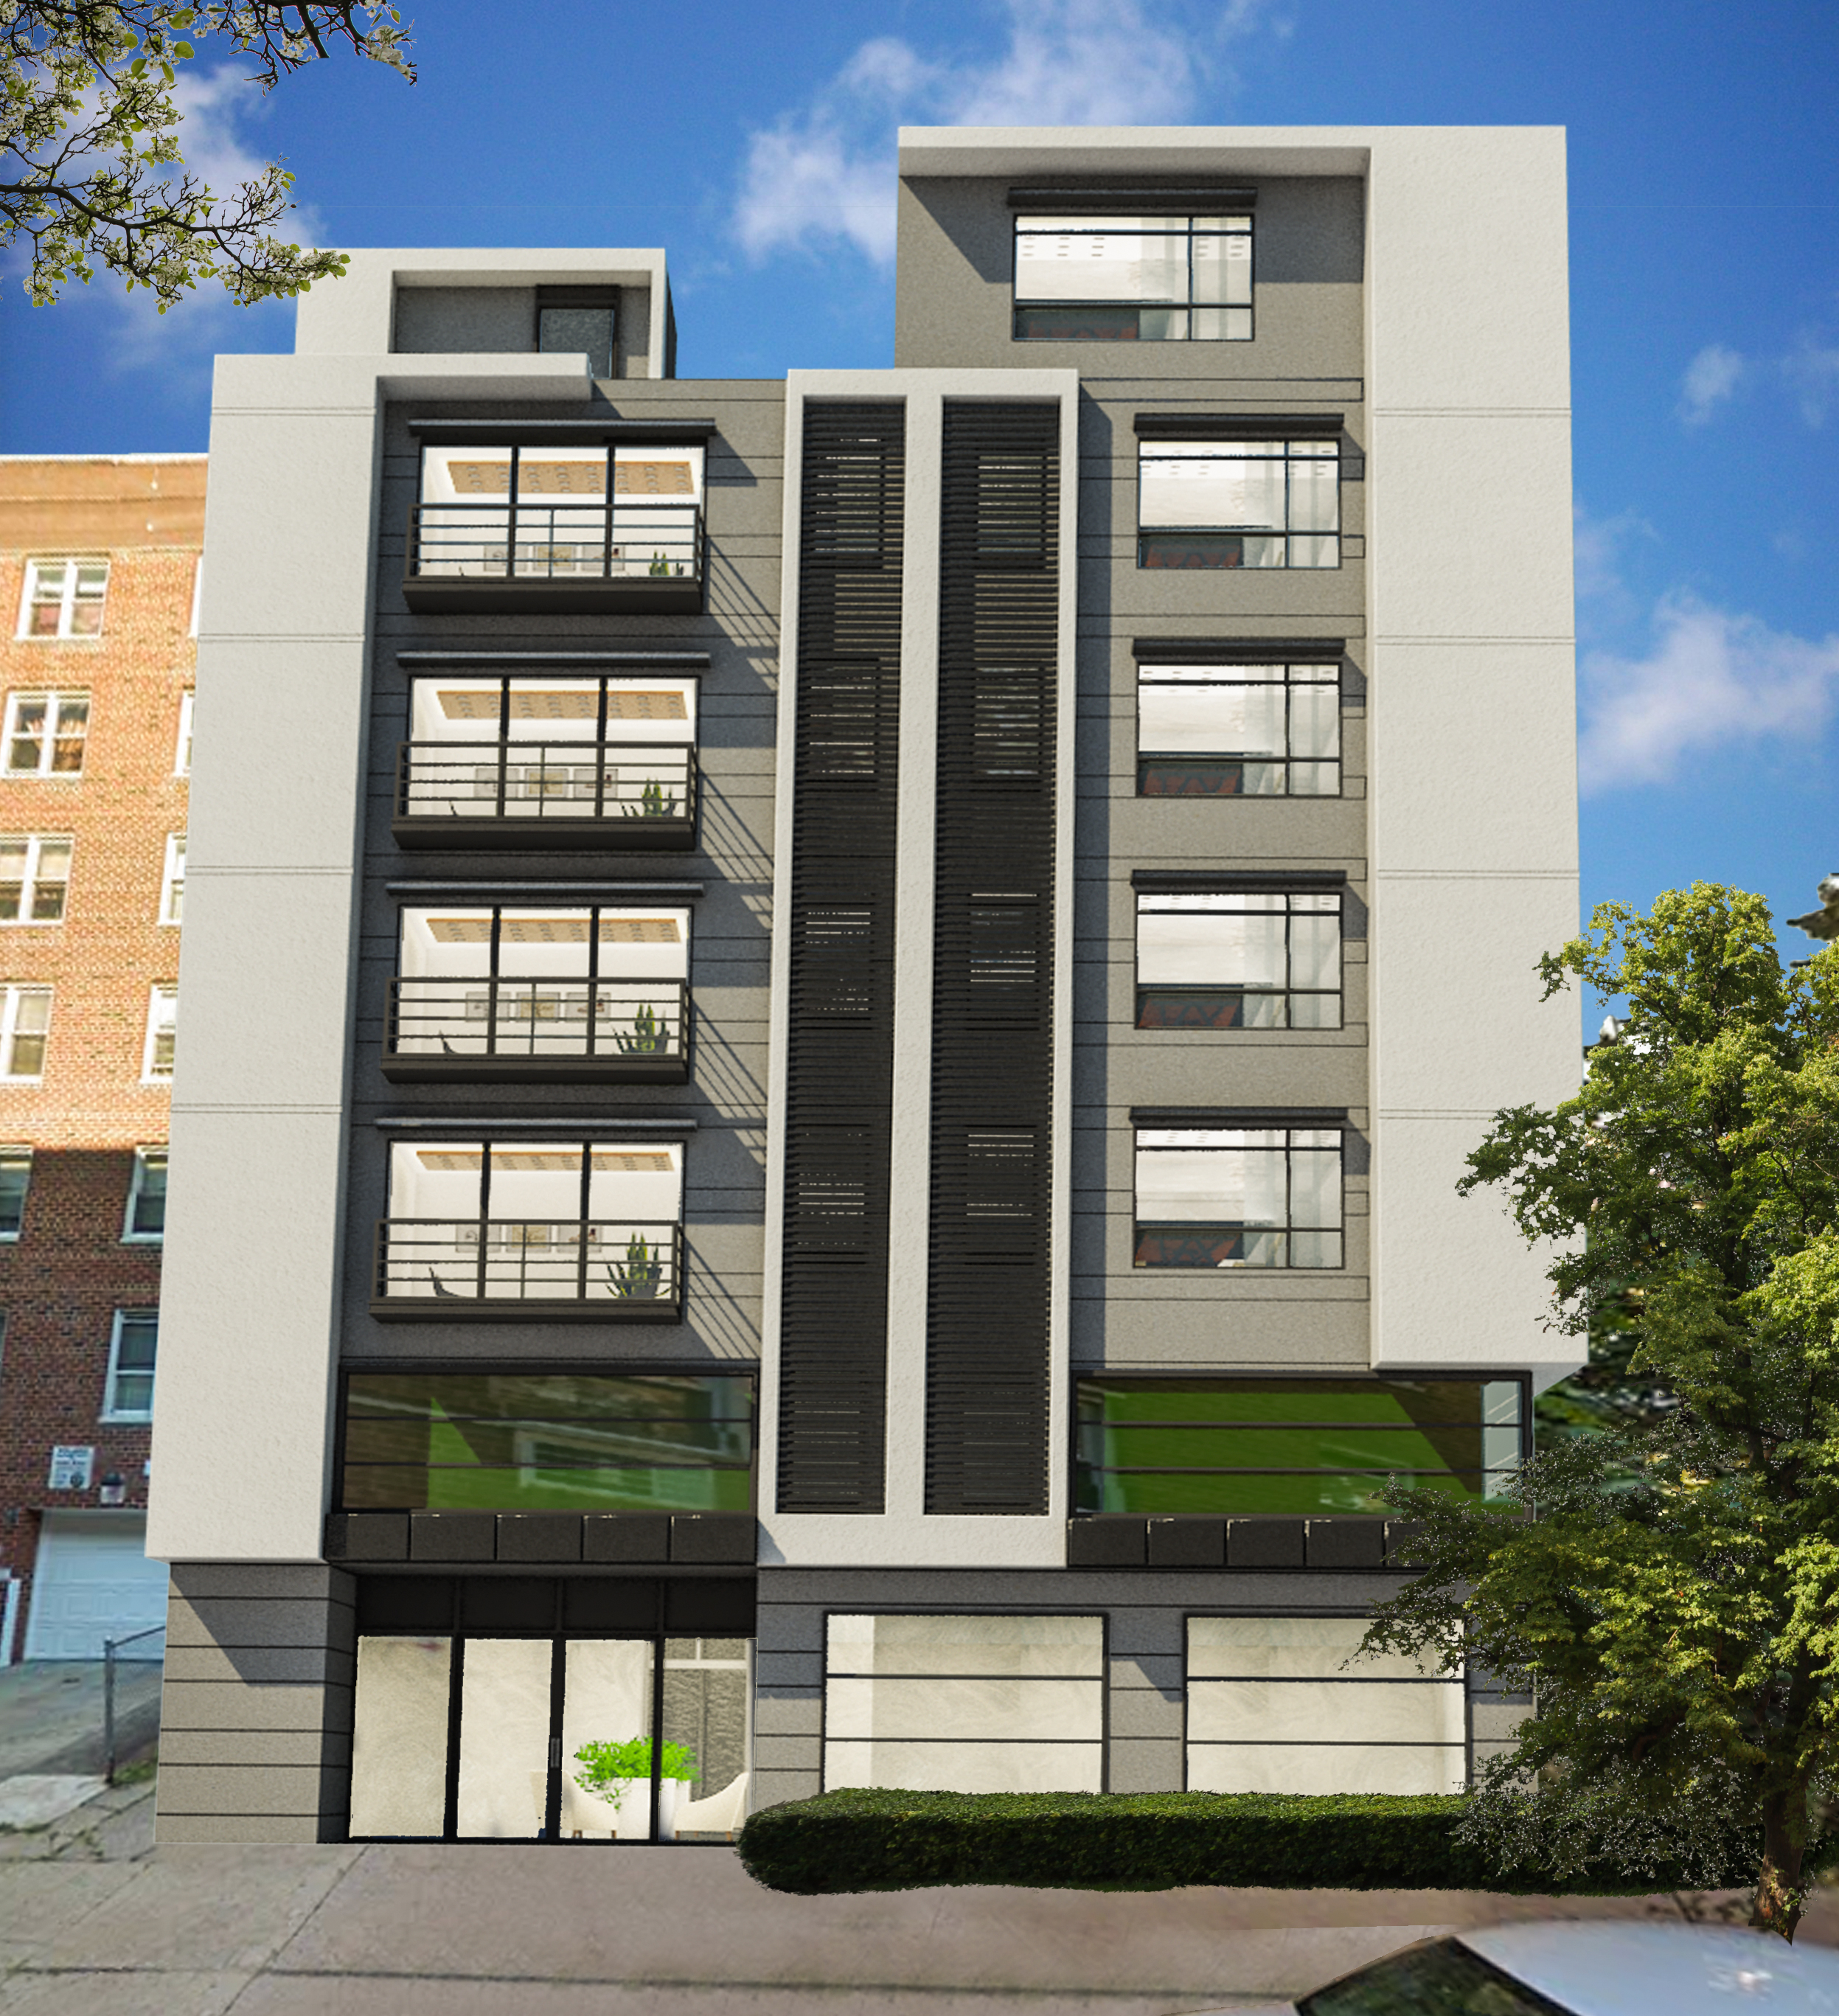 Nyc Apartment Building: Revealed: Seven-Story, 12-Unit Residential Building At 625